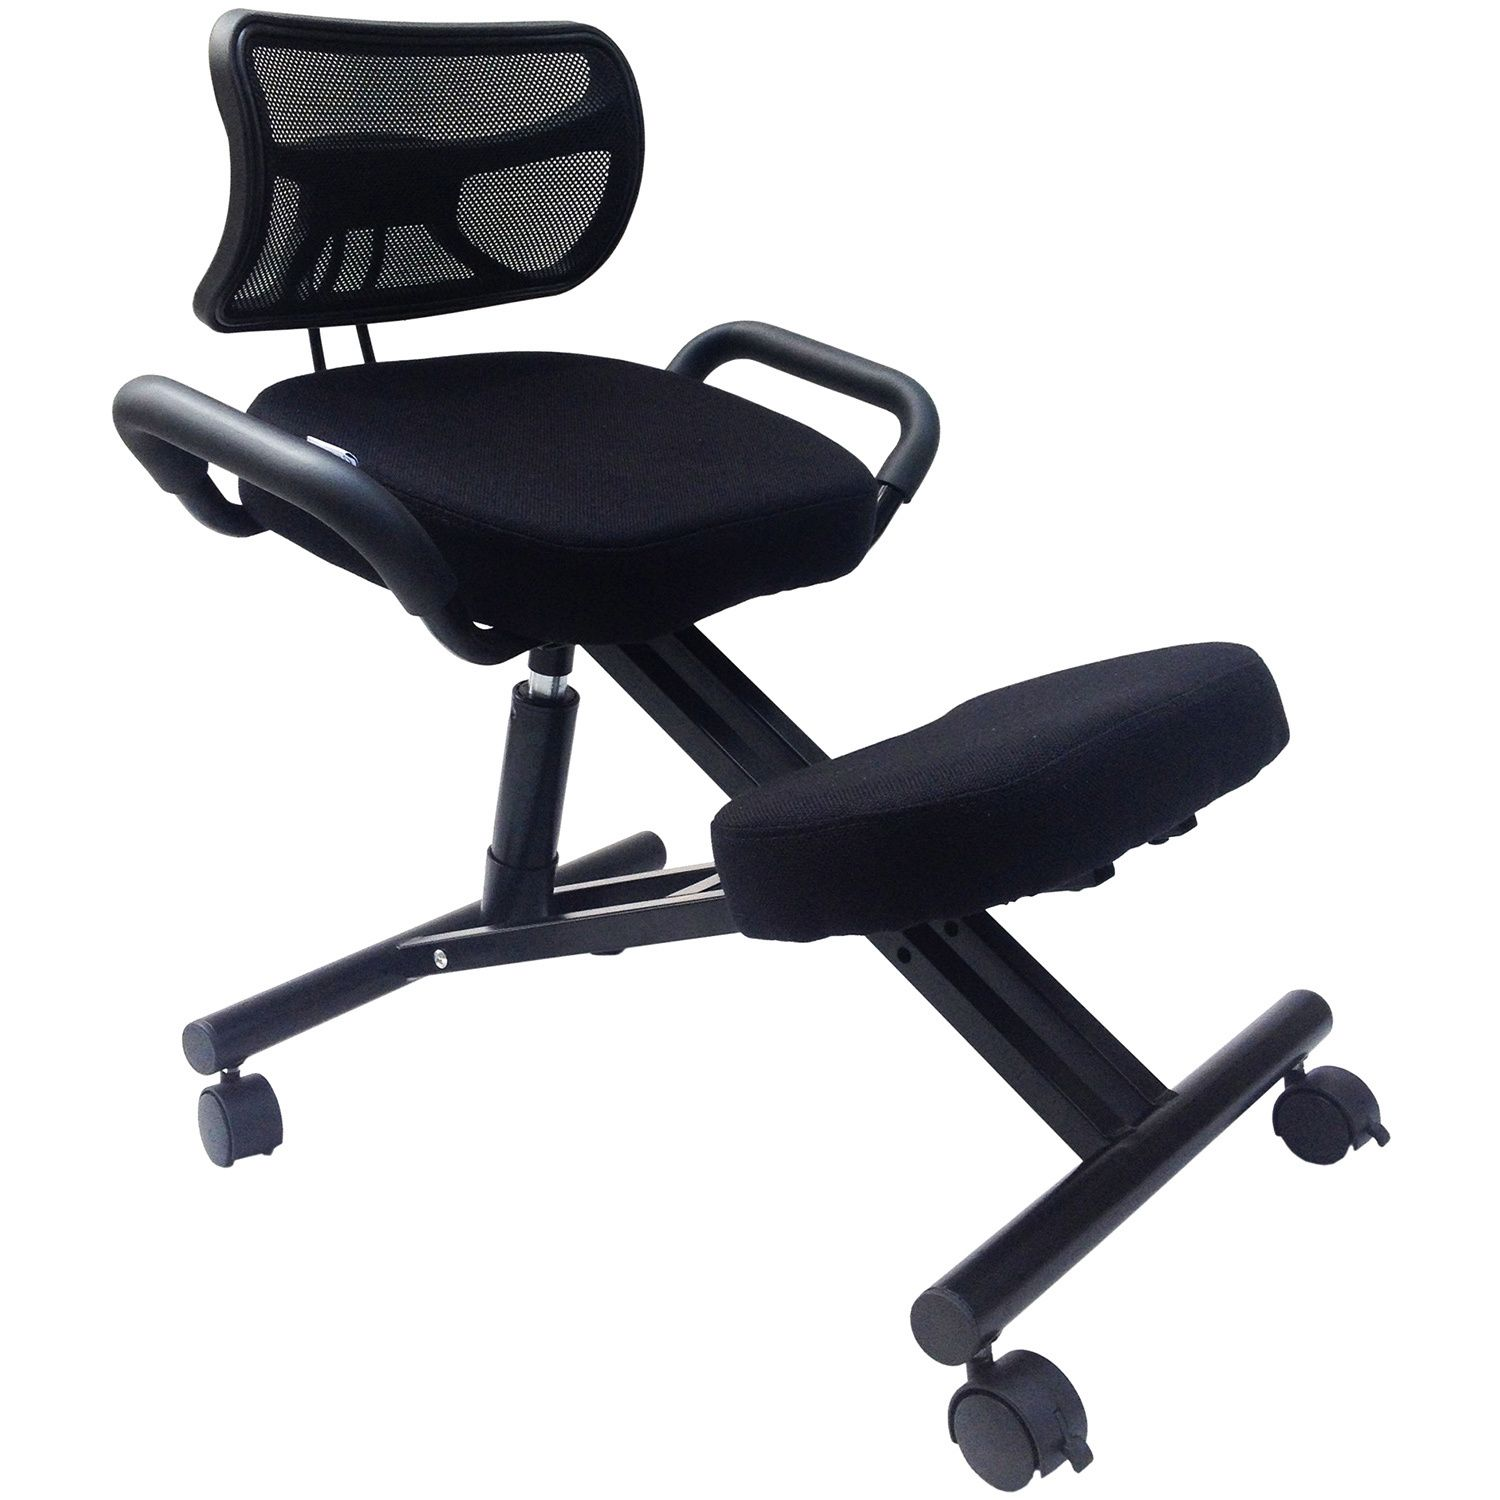 Ergonomic Chair Keyboard Position Think Steelcase Review The Sc 300b Kneeling Is Built To Support